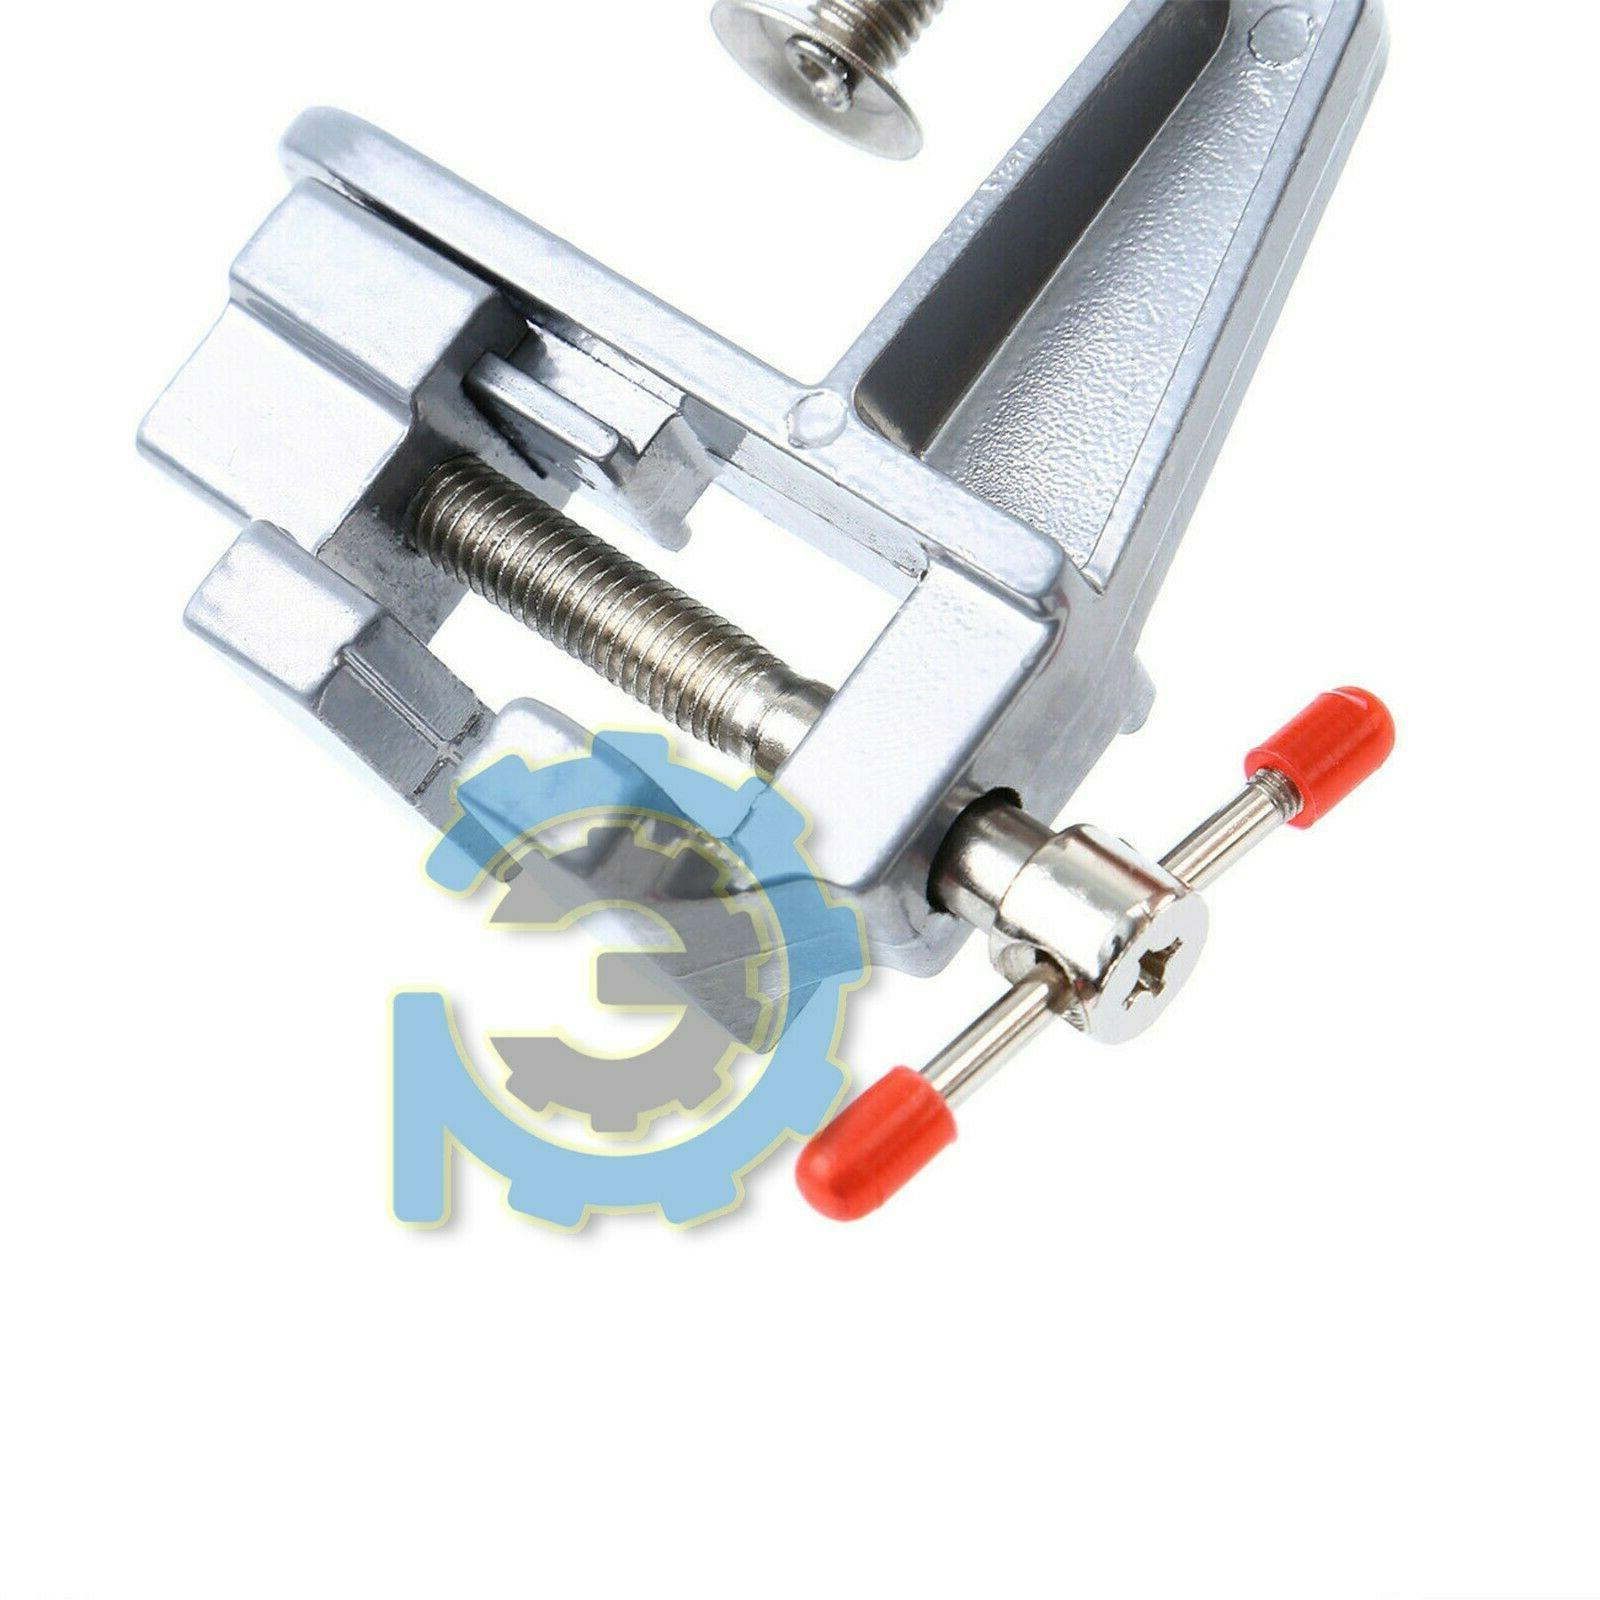 Bench Vise with Swivel Base US